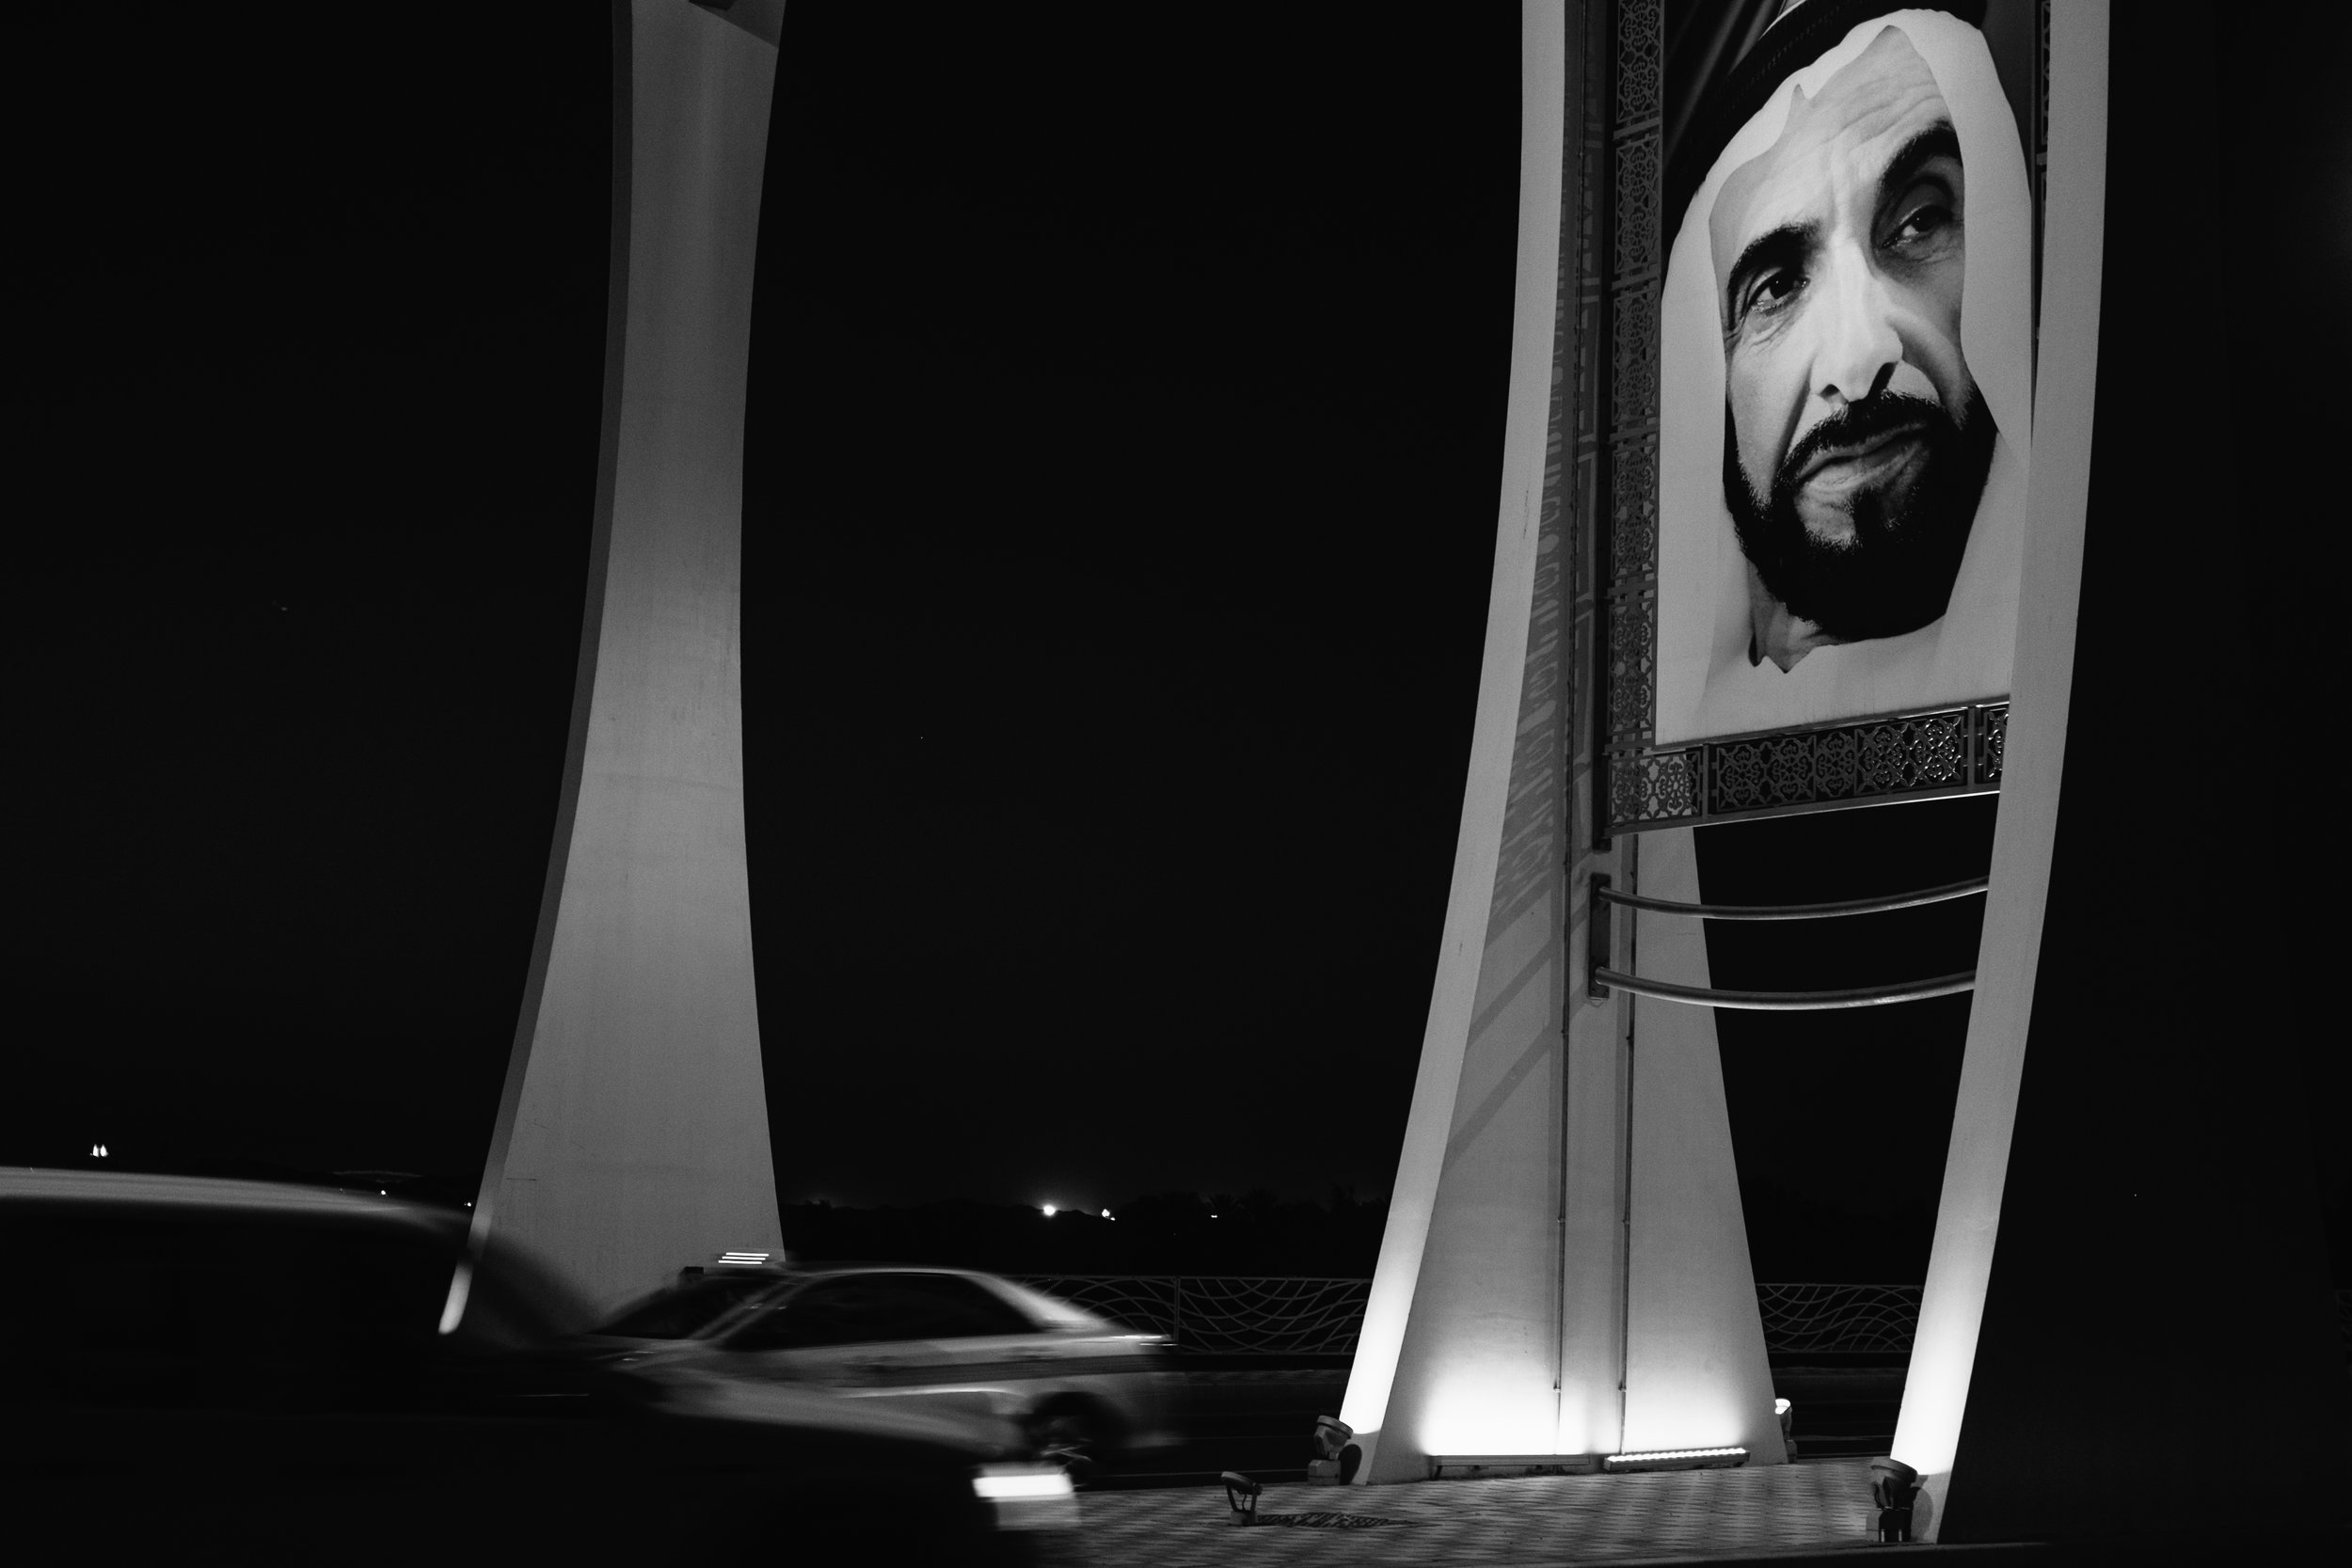 Sheikh portrait at the Zayed Bin Sultan Al Nahyan Street Bridge